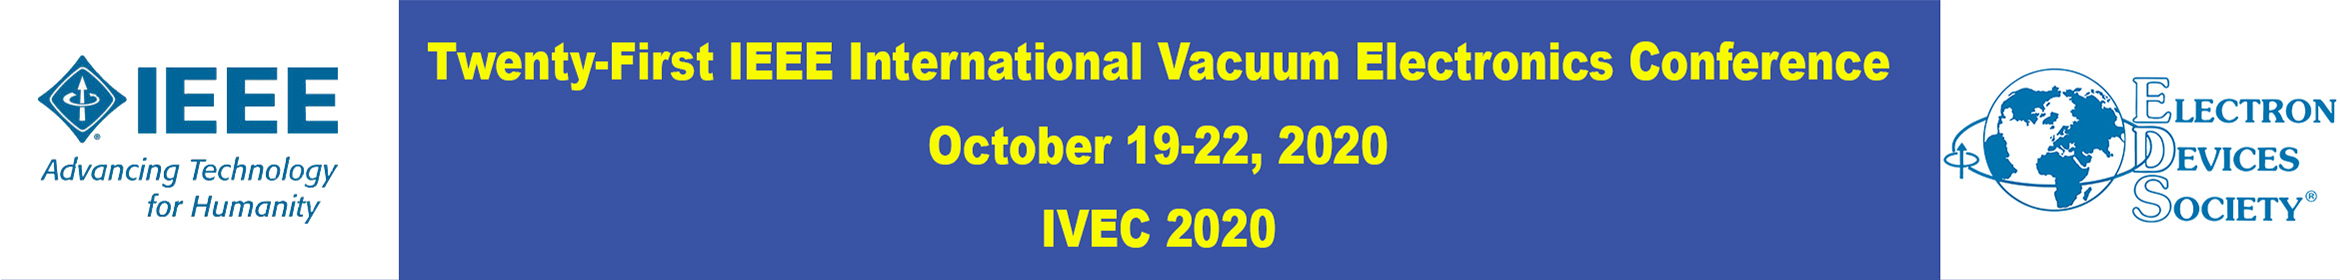 2020 IEEE International Vacuum Electronics Conference (IVEC) Main banner